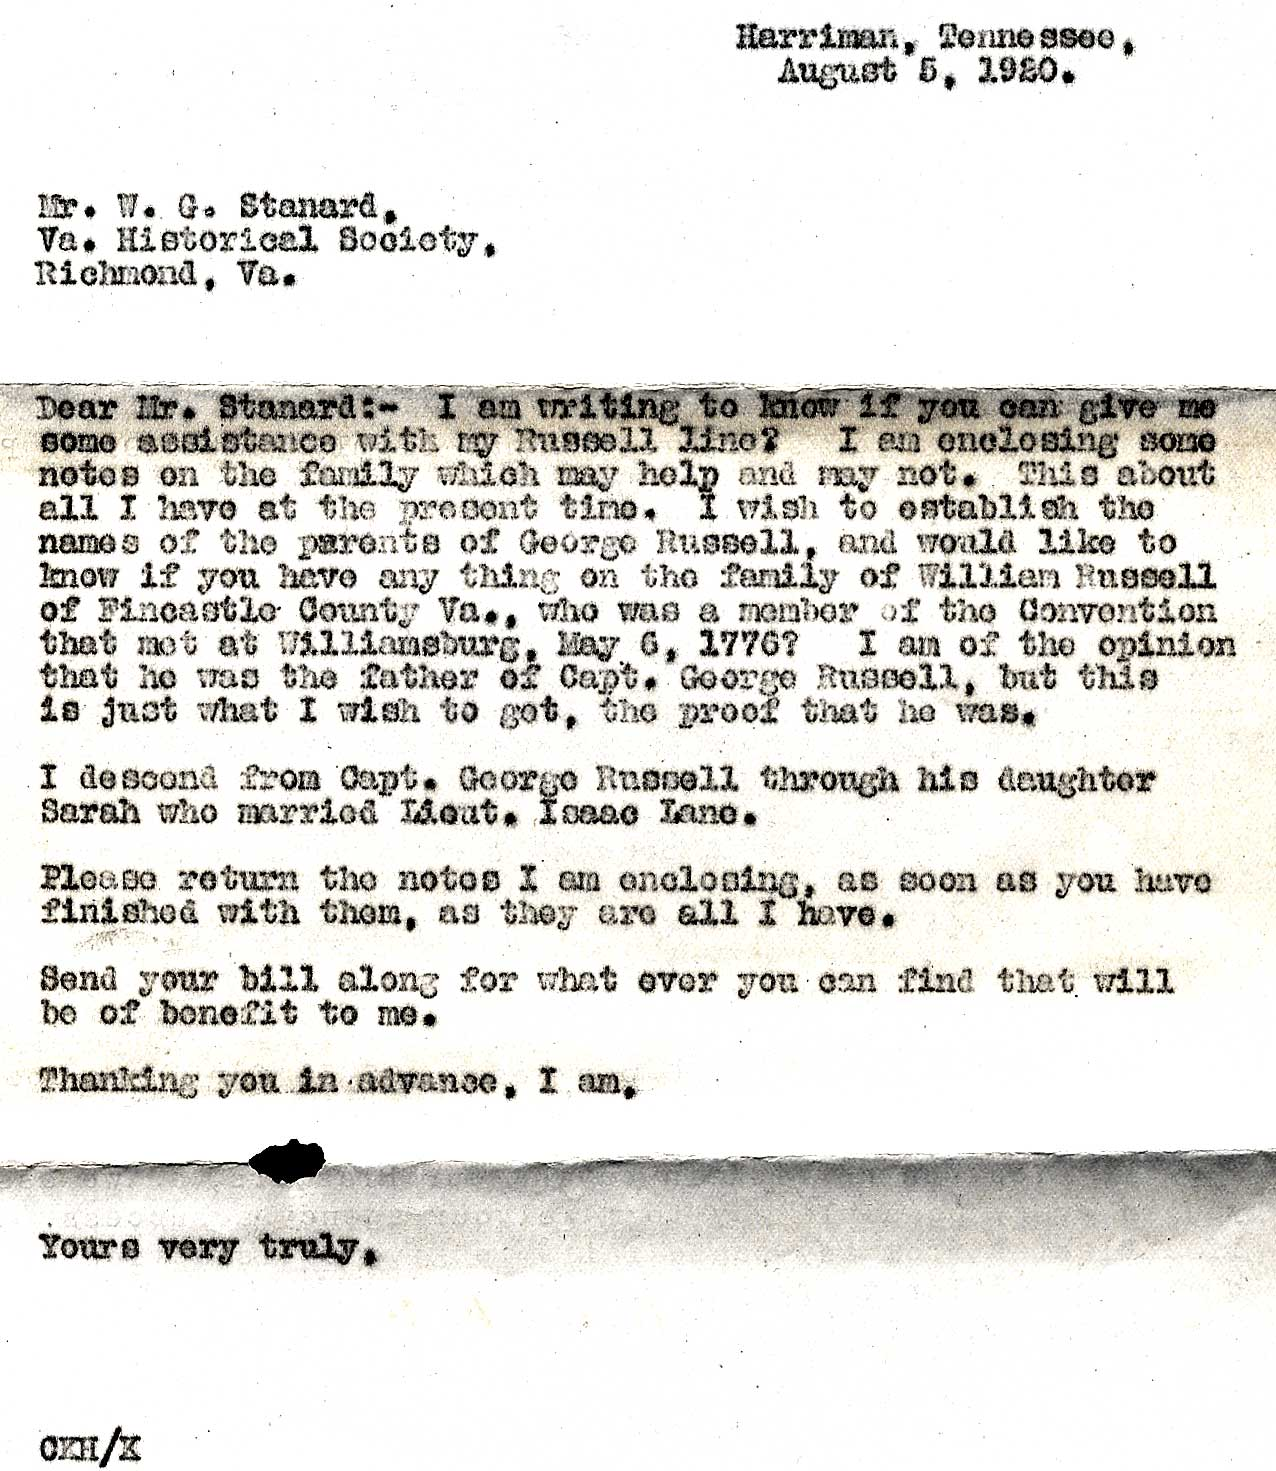 letter to me c k hill letter to w g stanard of august 5 1920 23220